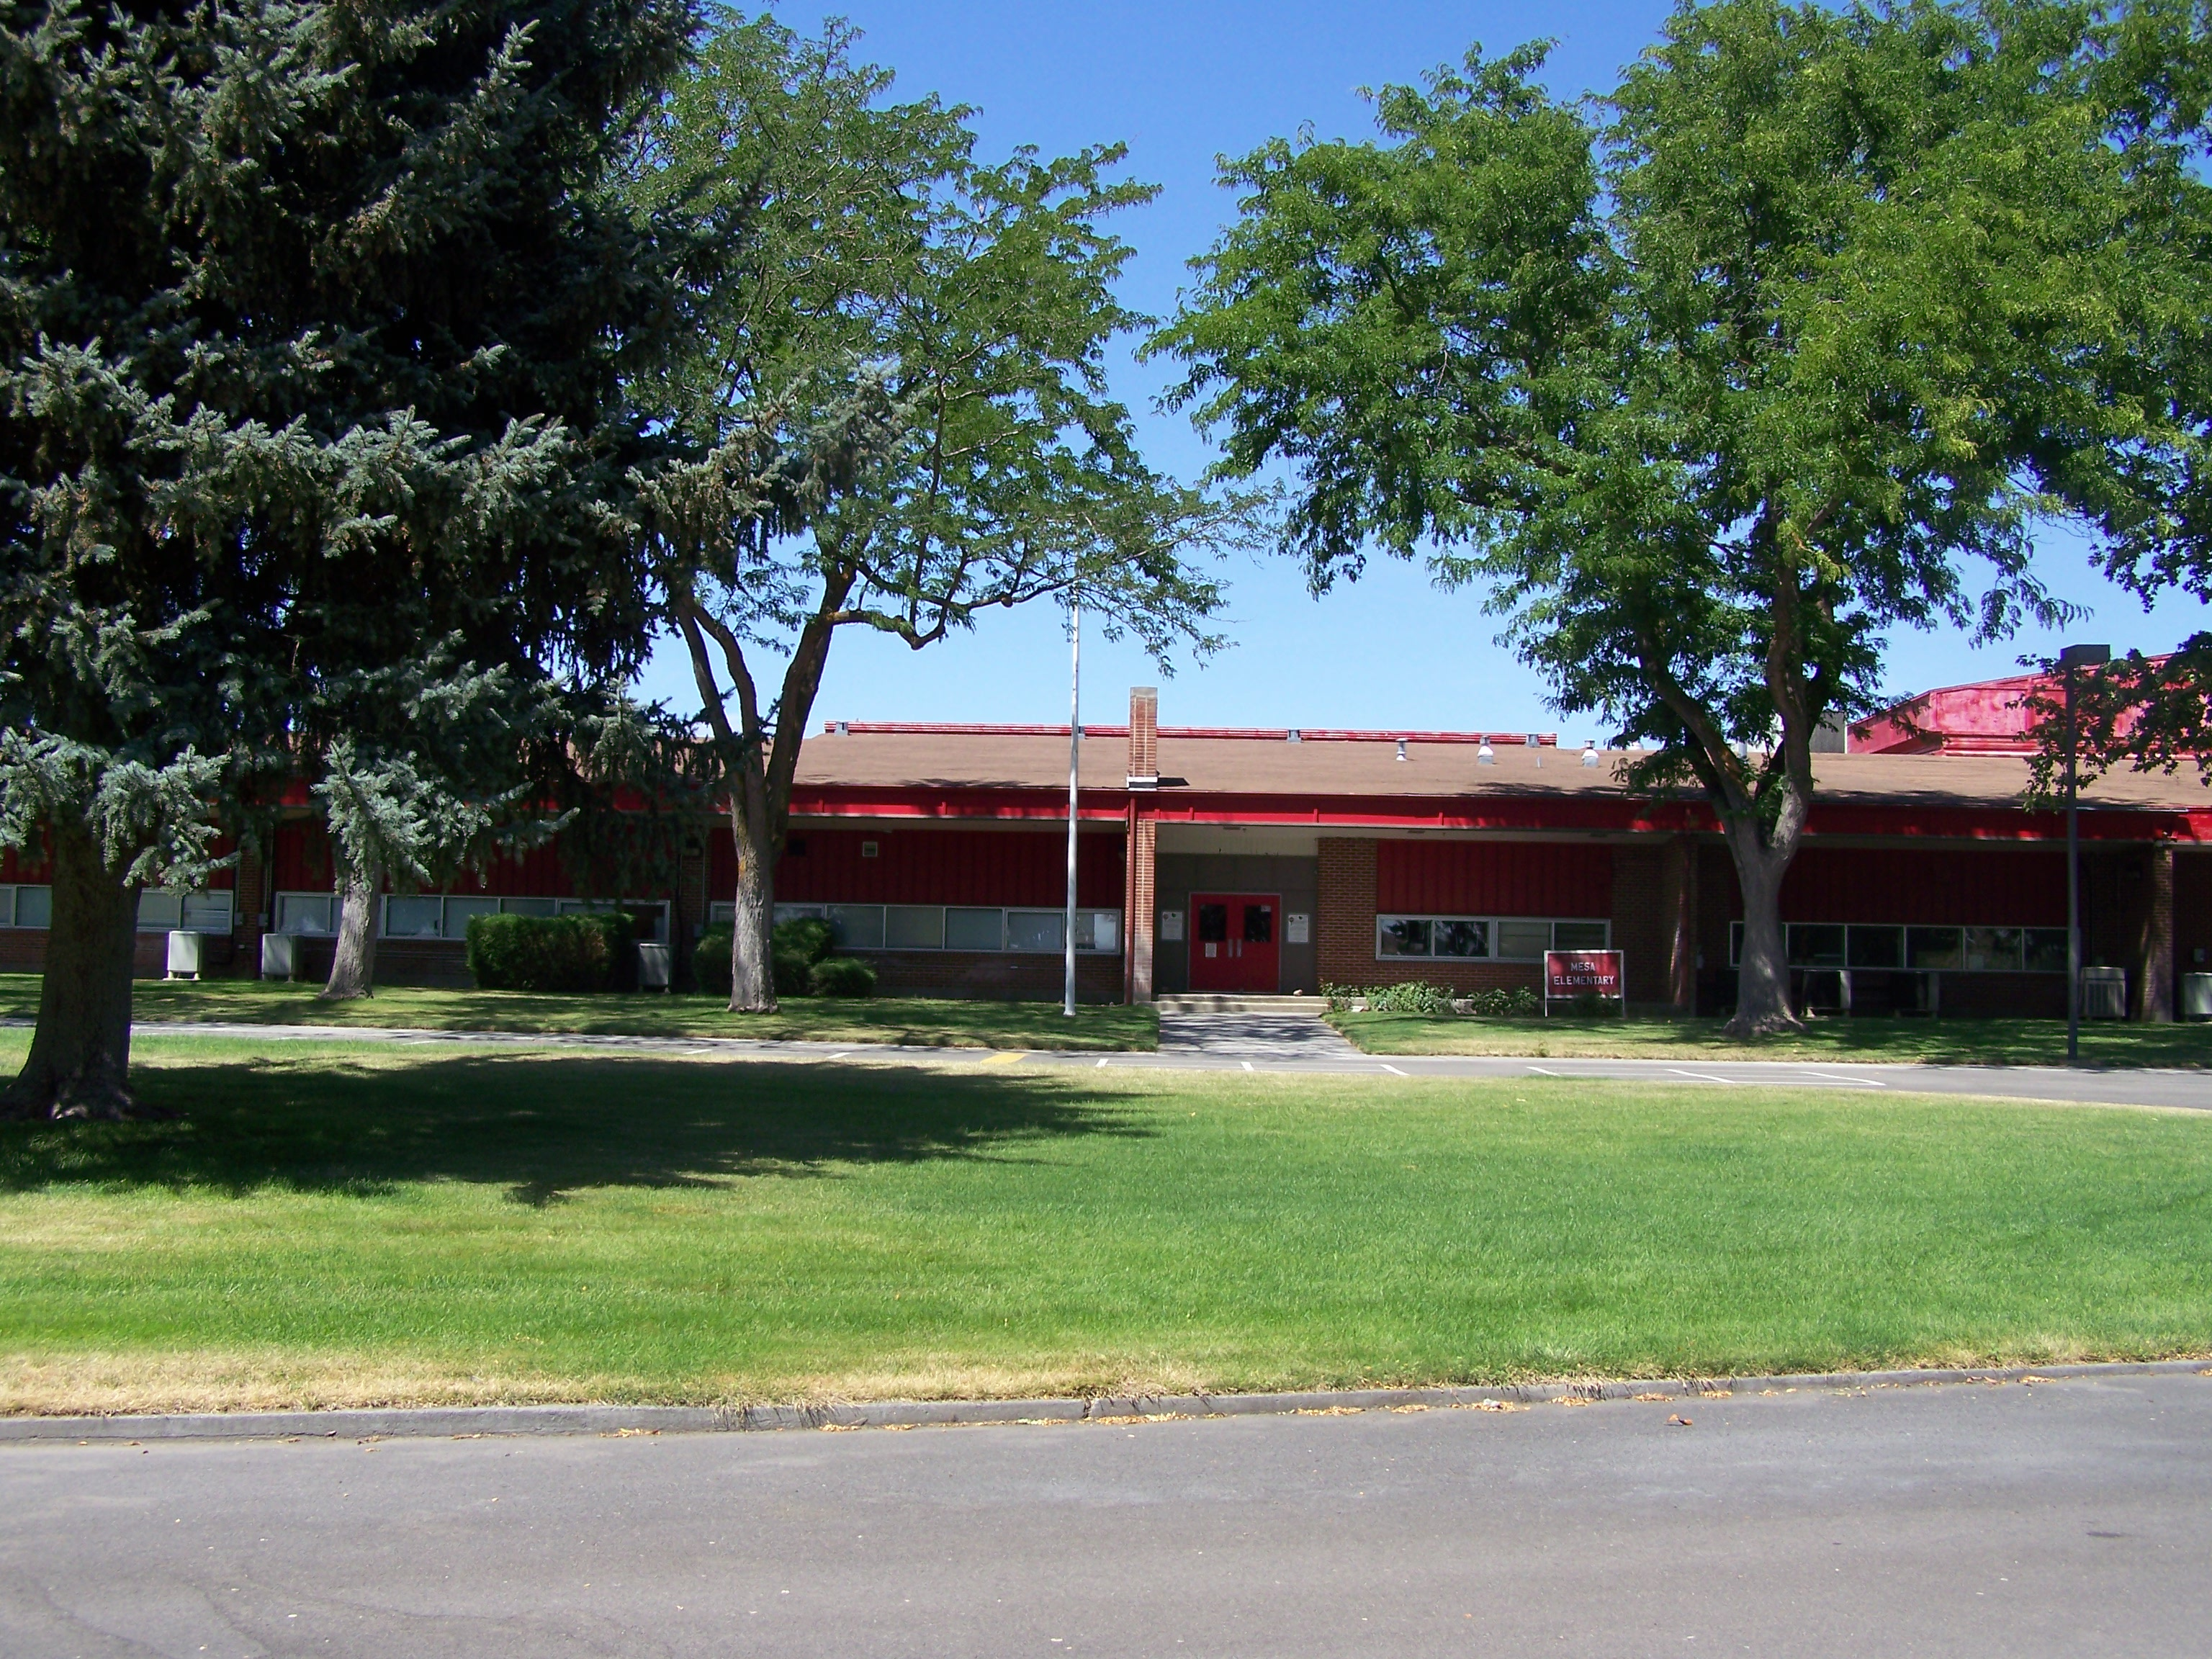 The building of MESA Elementary